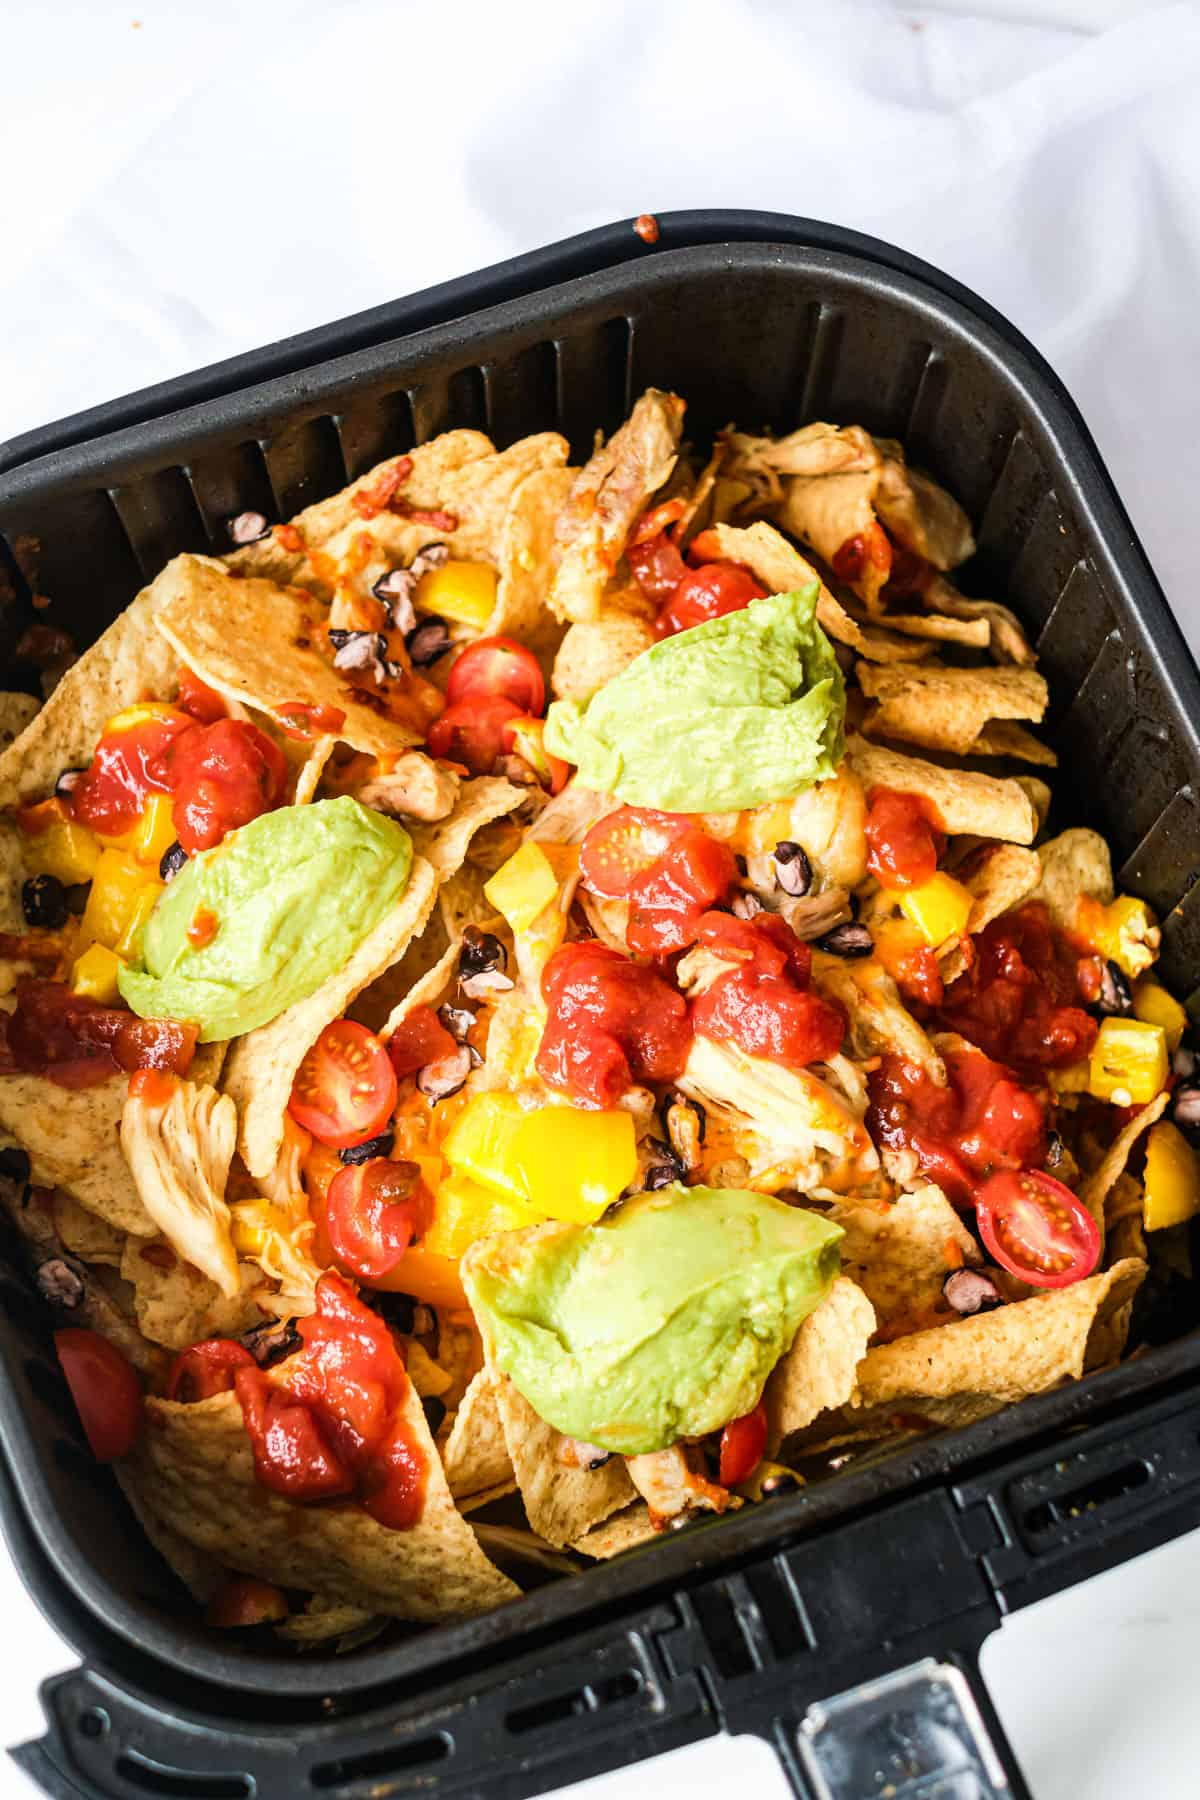 An air fryer basket full of Air Fryer Chicken Nachos with guacamole, salsa and toppings